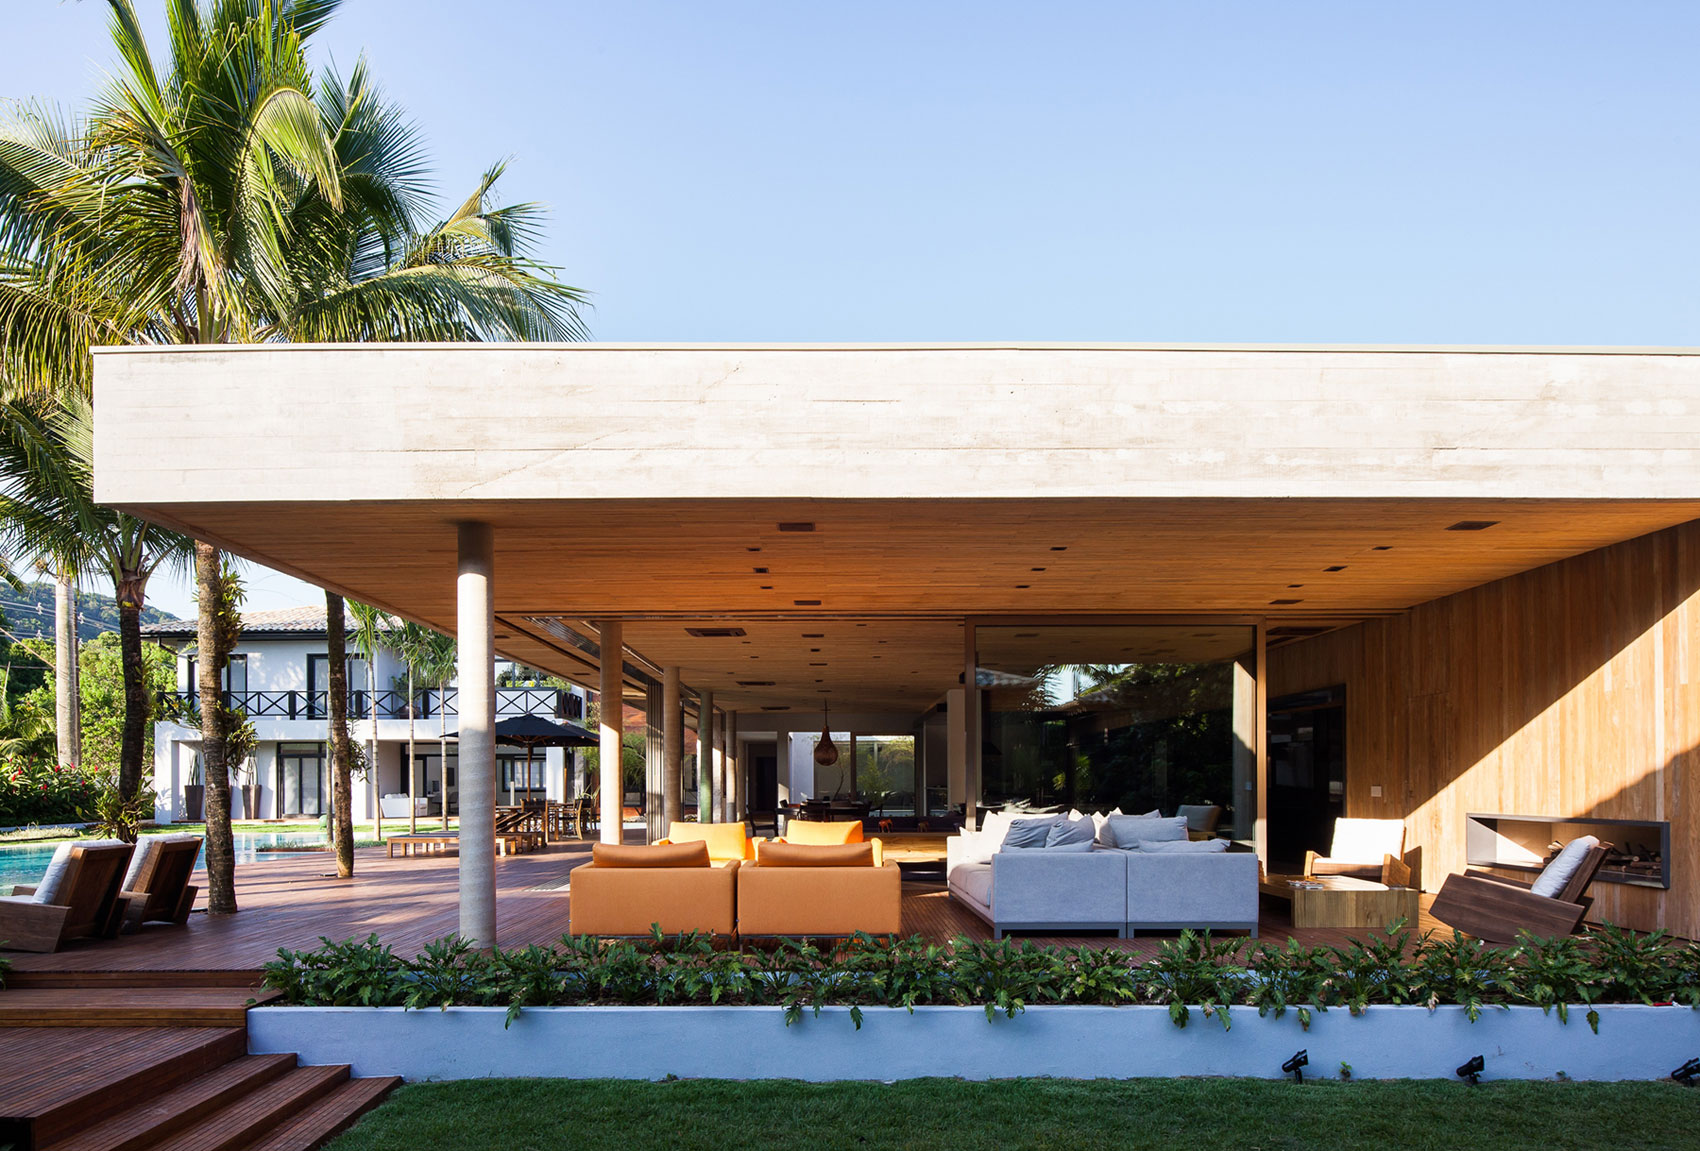 Modern Leisure Pavilion of MZ Residence by Basiches Arquitetos-04